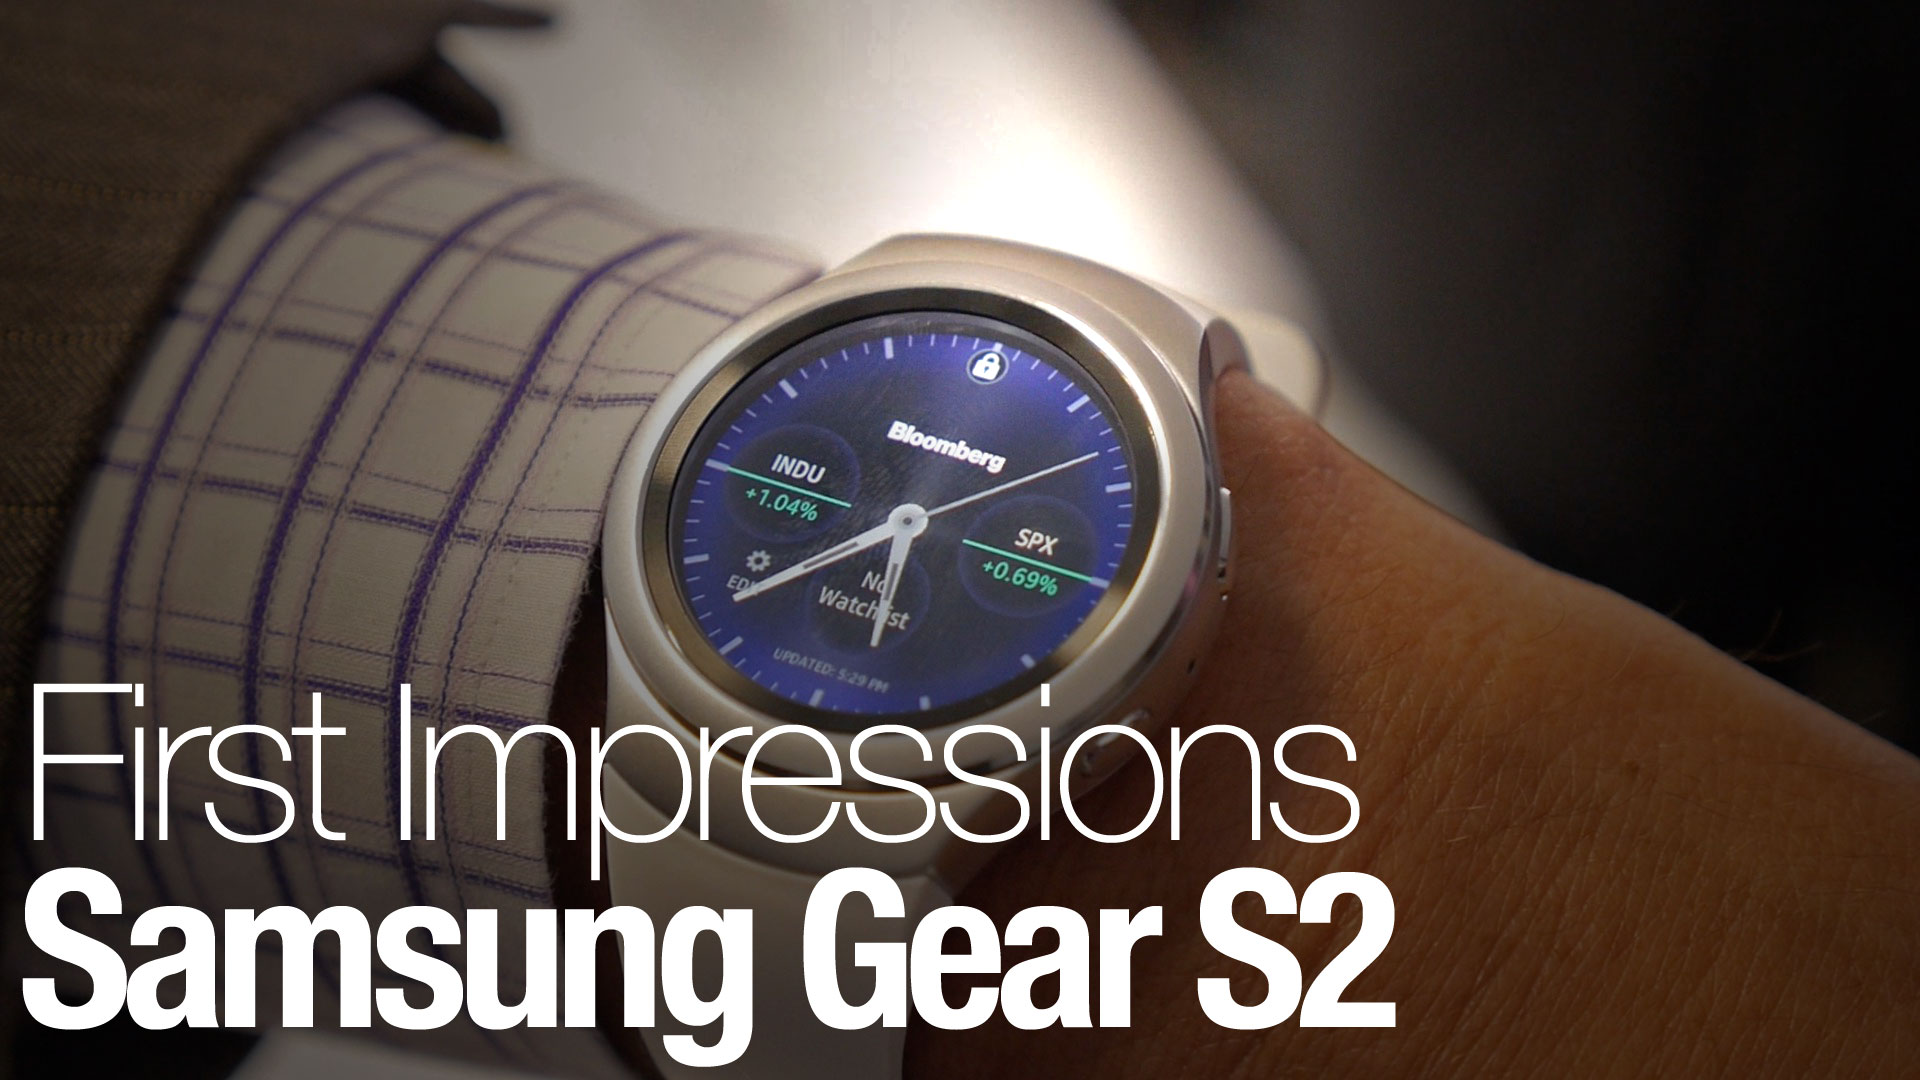 First impressions: Samsung Gear S2 Smartwatch